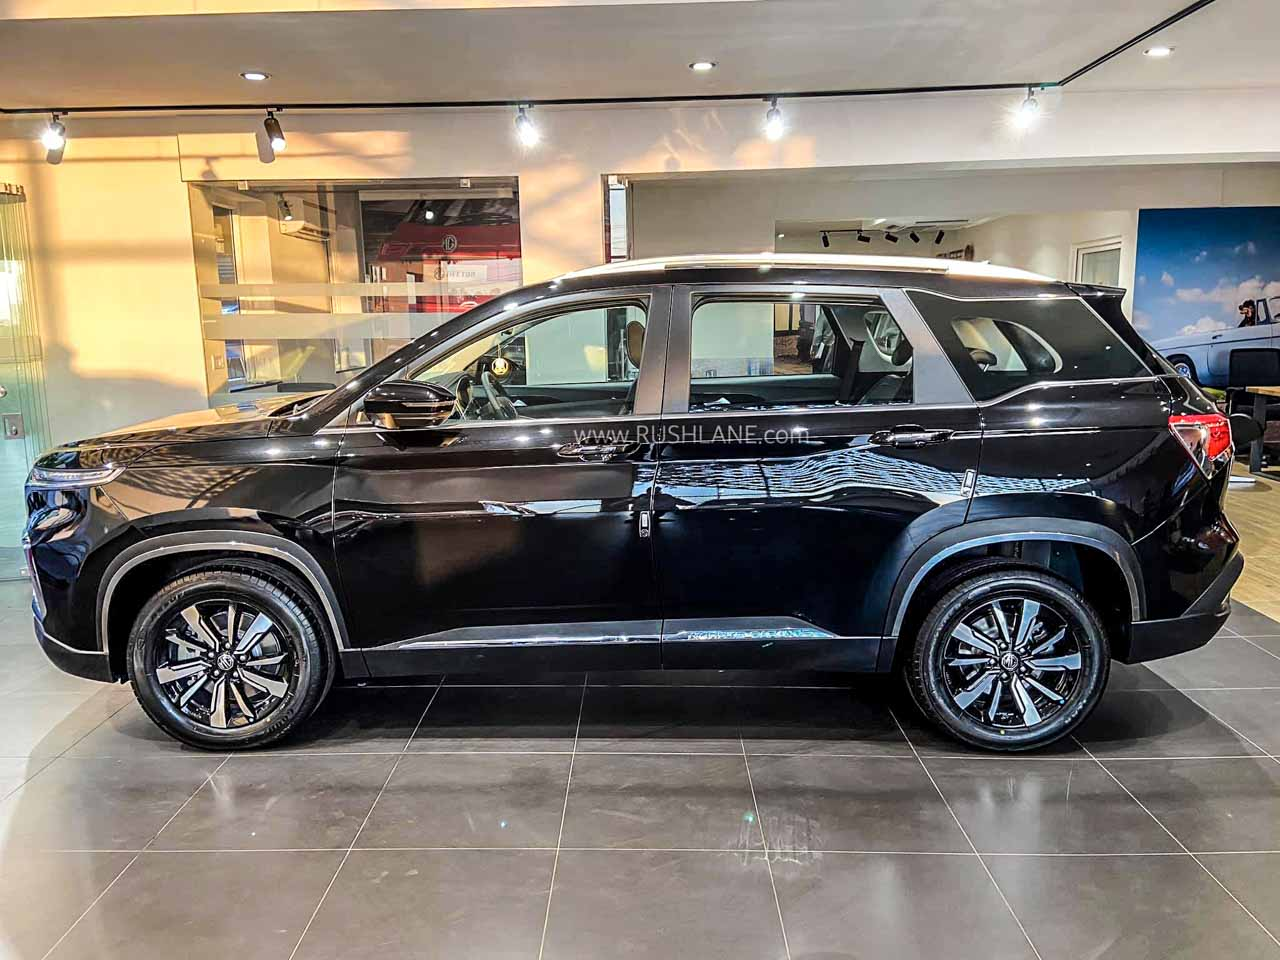 MG Hector record sales